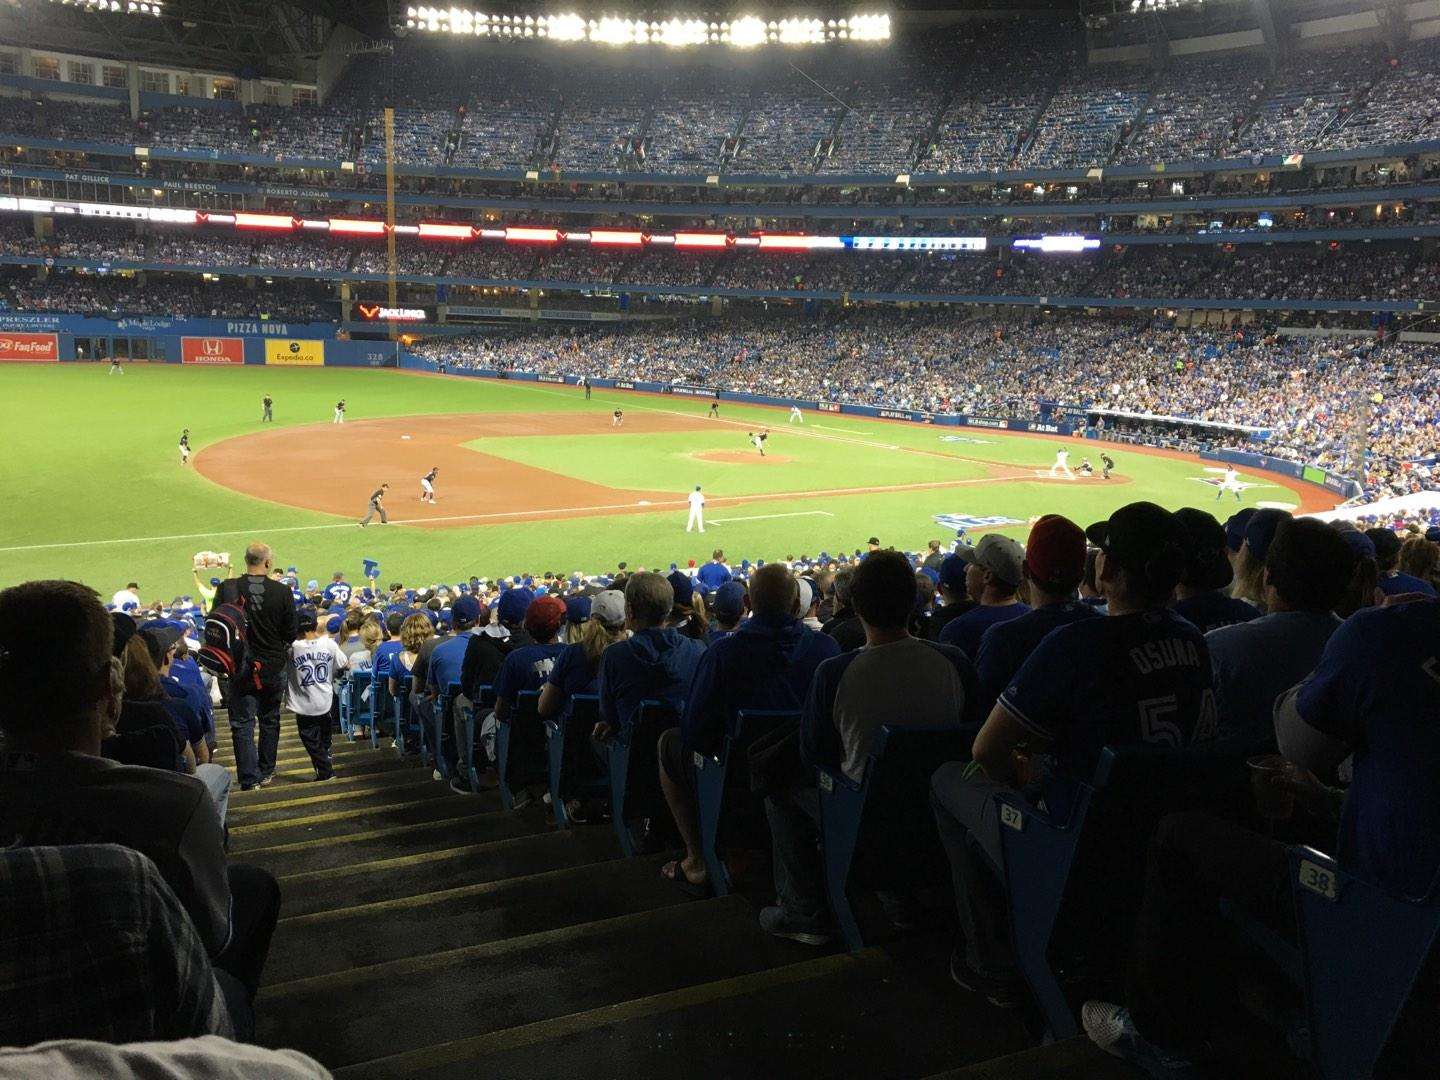 Rogers Centre Section 129L Row 40 Seat 1